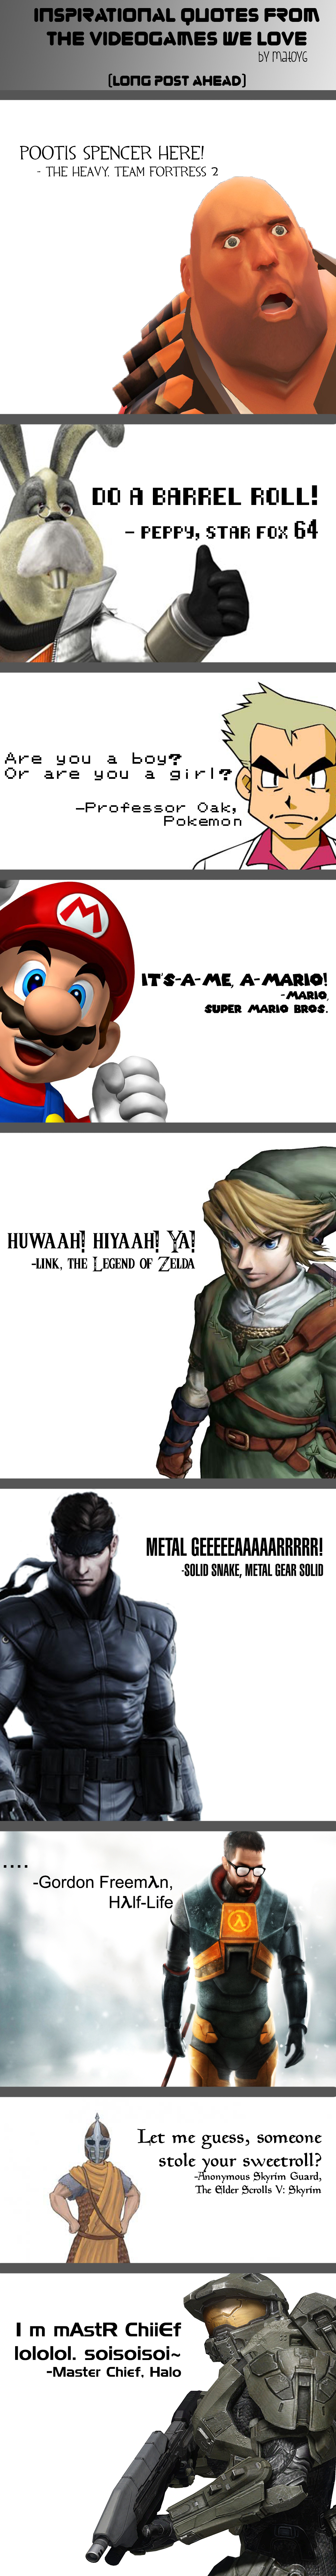 Inspirational Quotes From The Videogames We Love